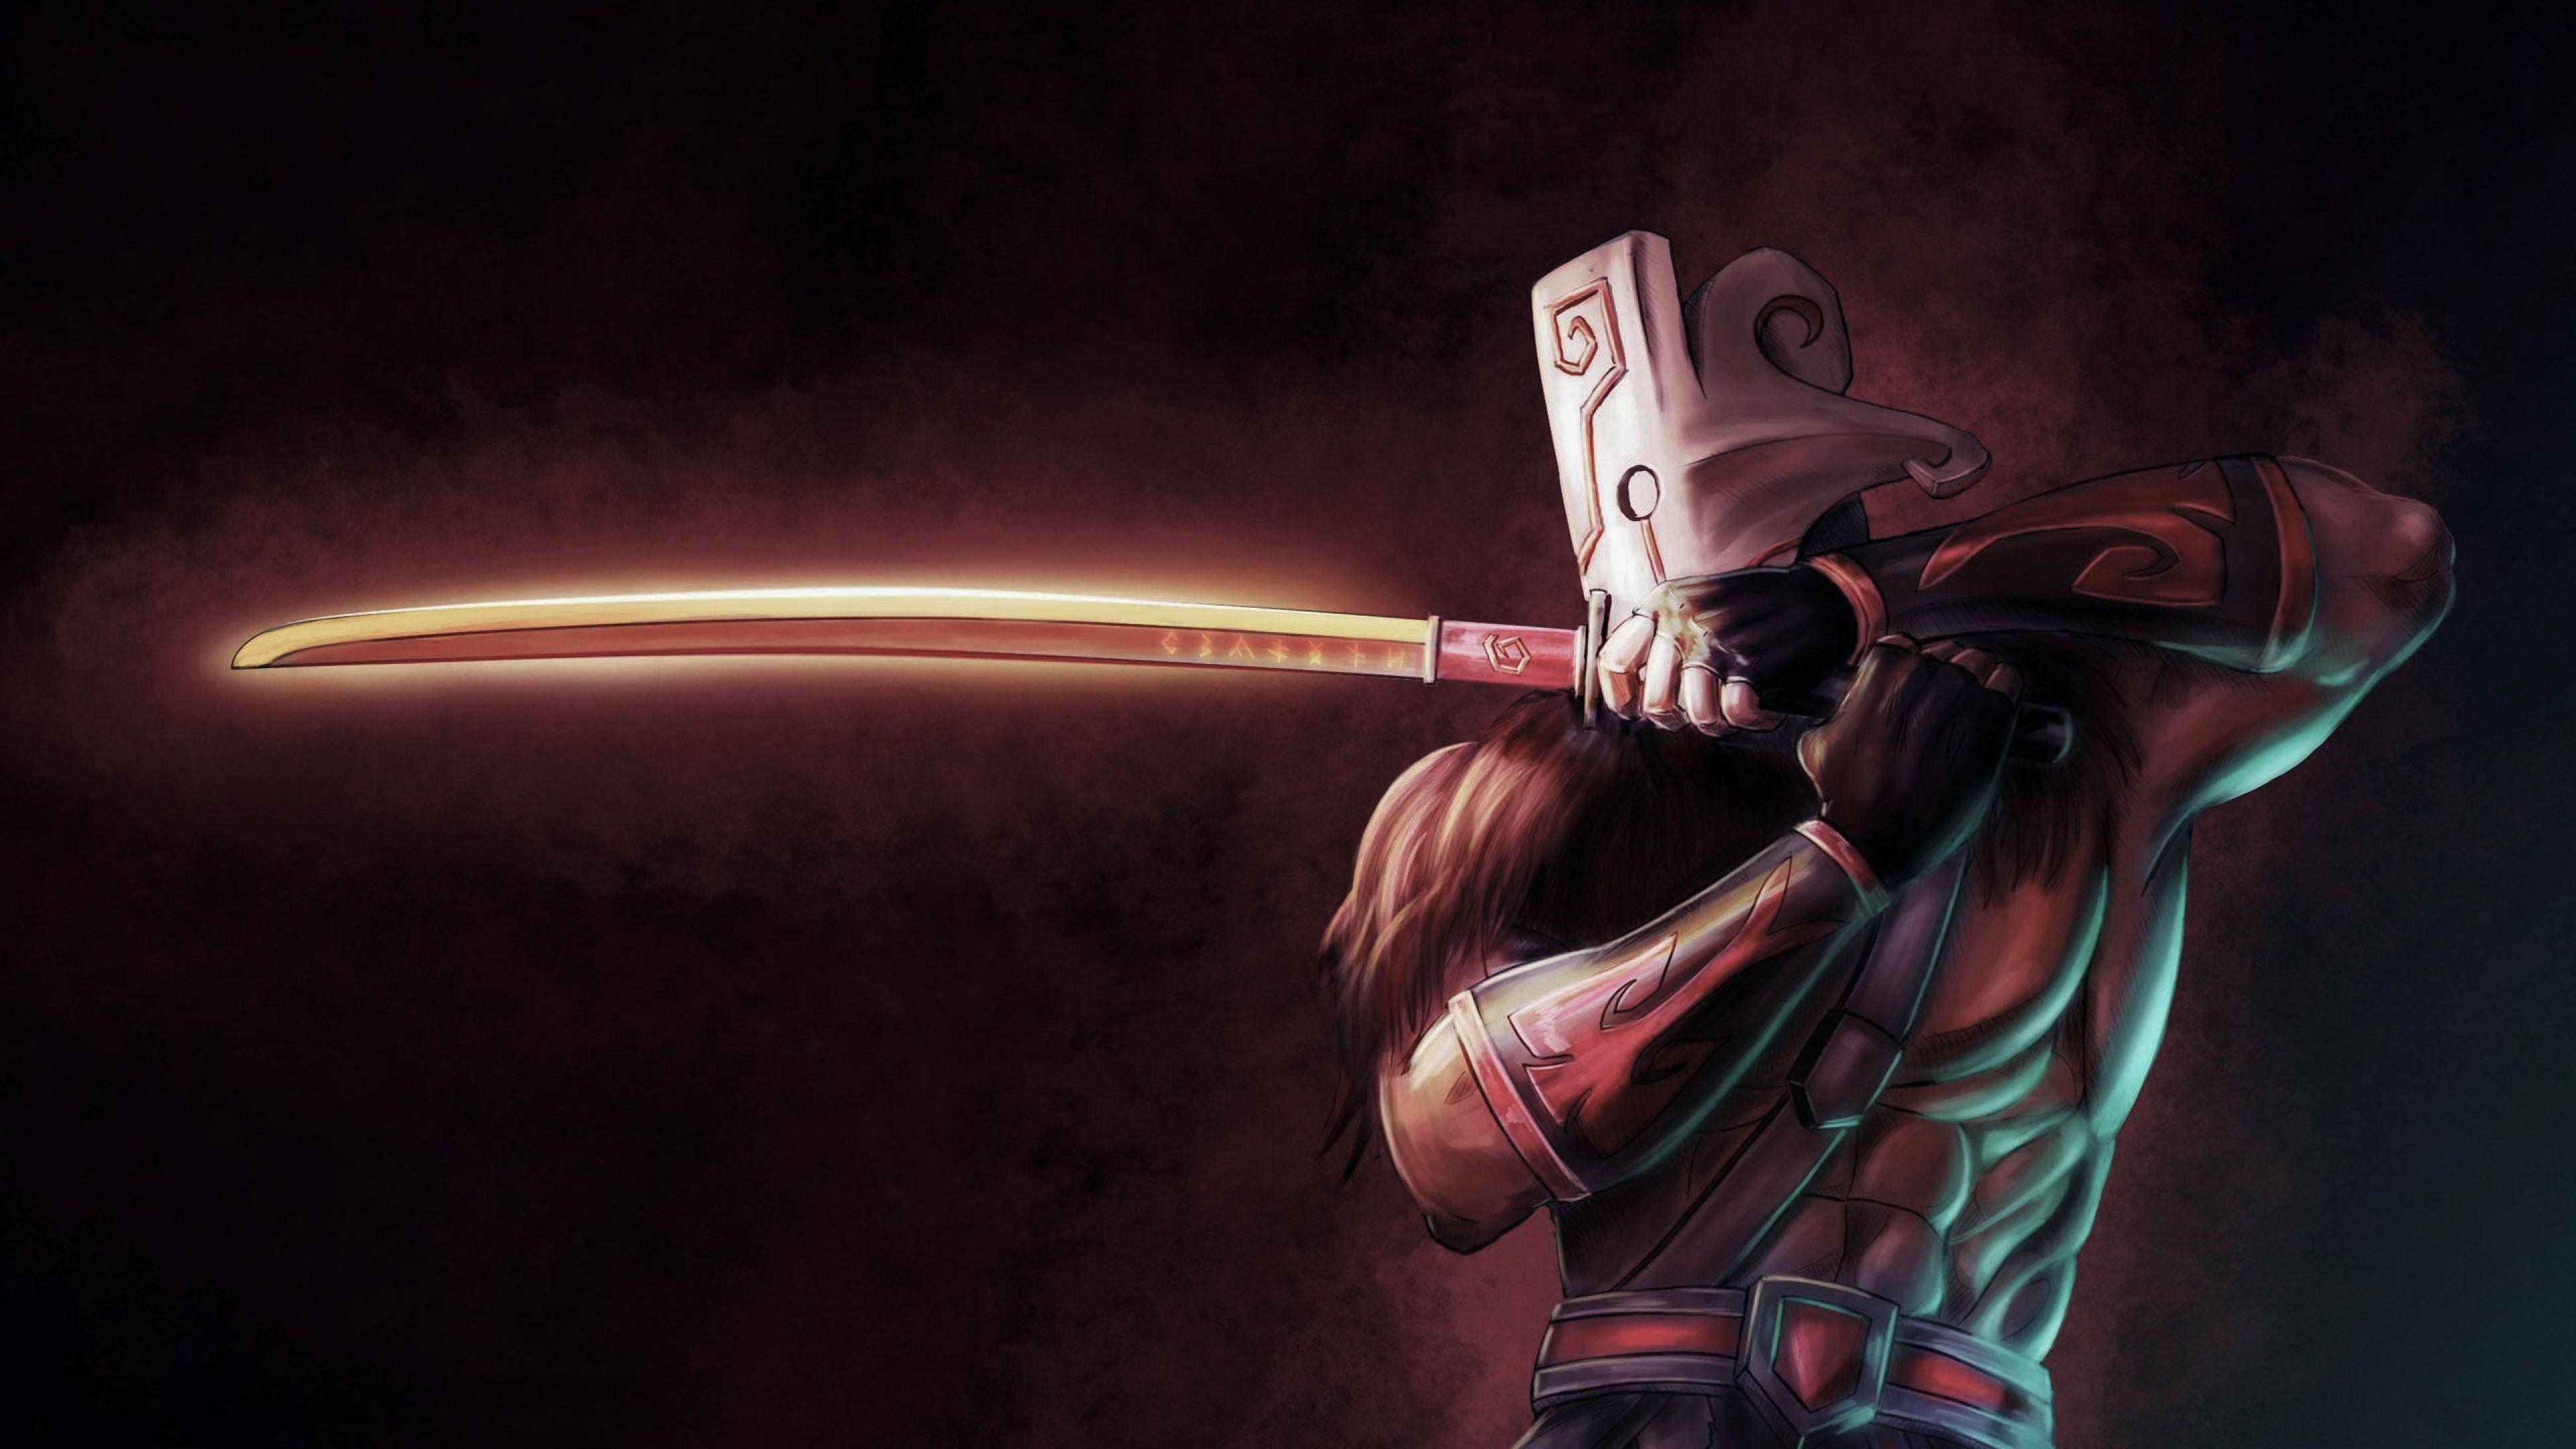 Juggernaut Dota 2, HD Games, 4k Wallpapers, Images, Backgrounds ...